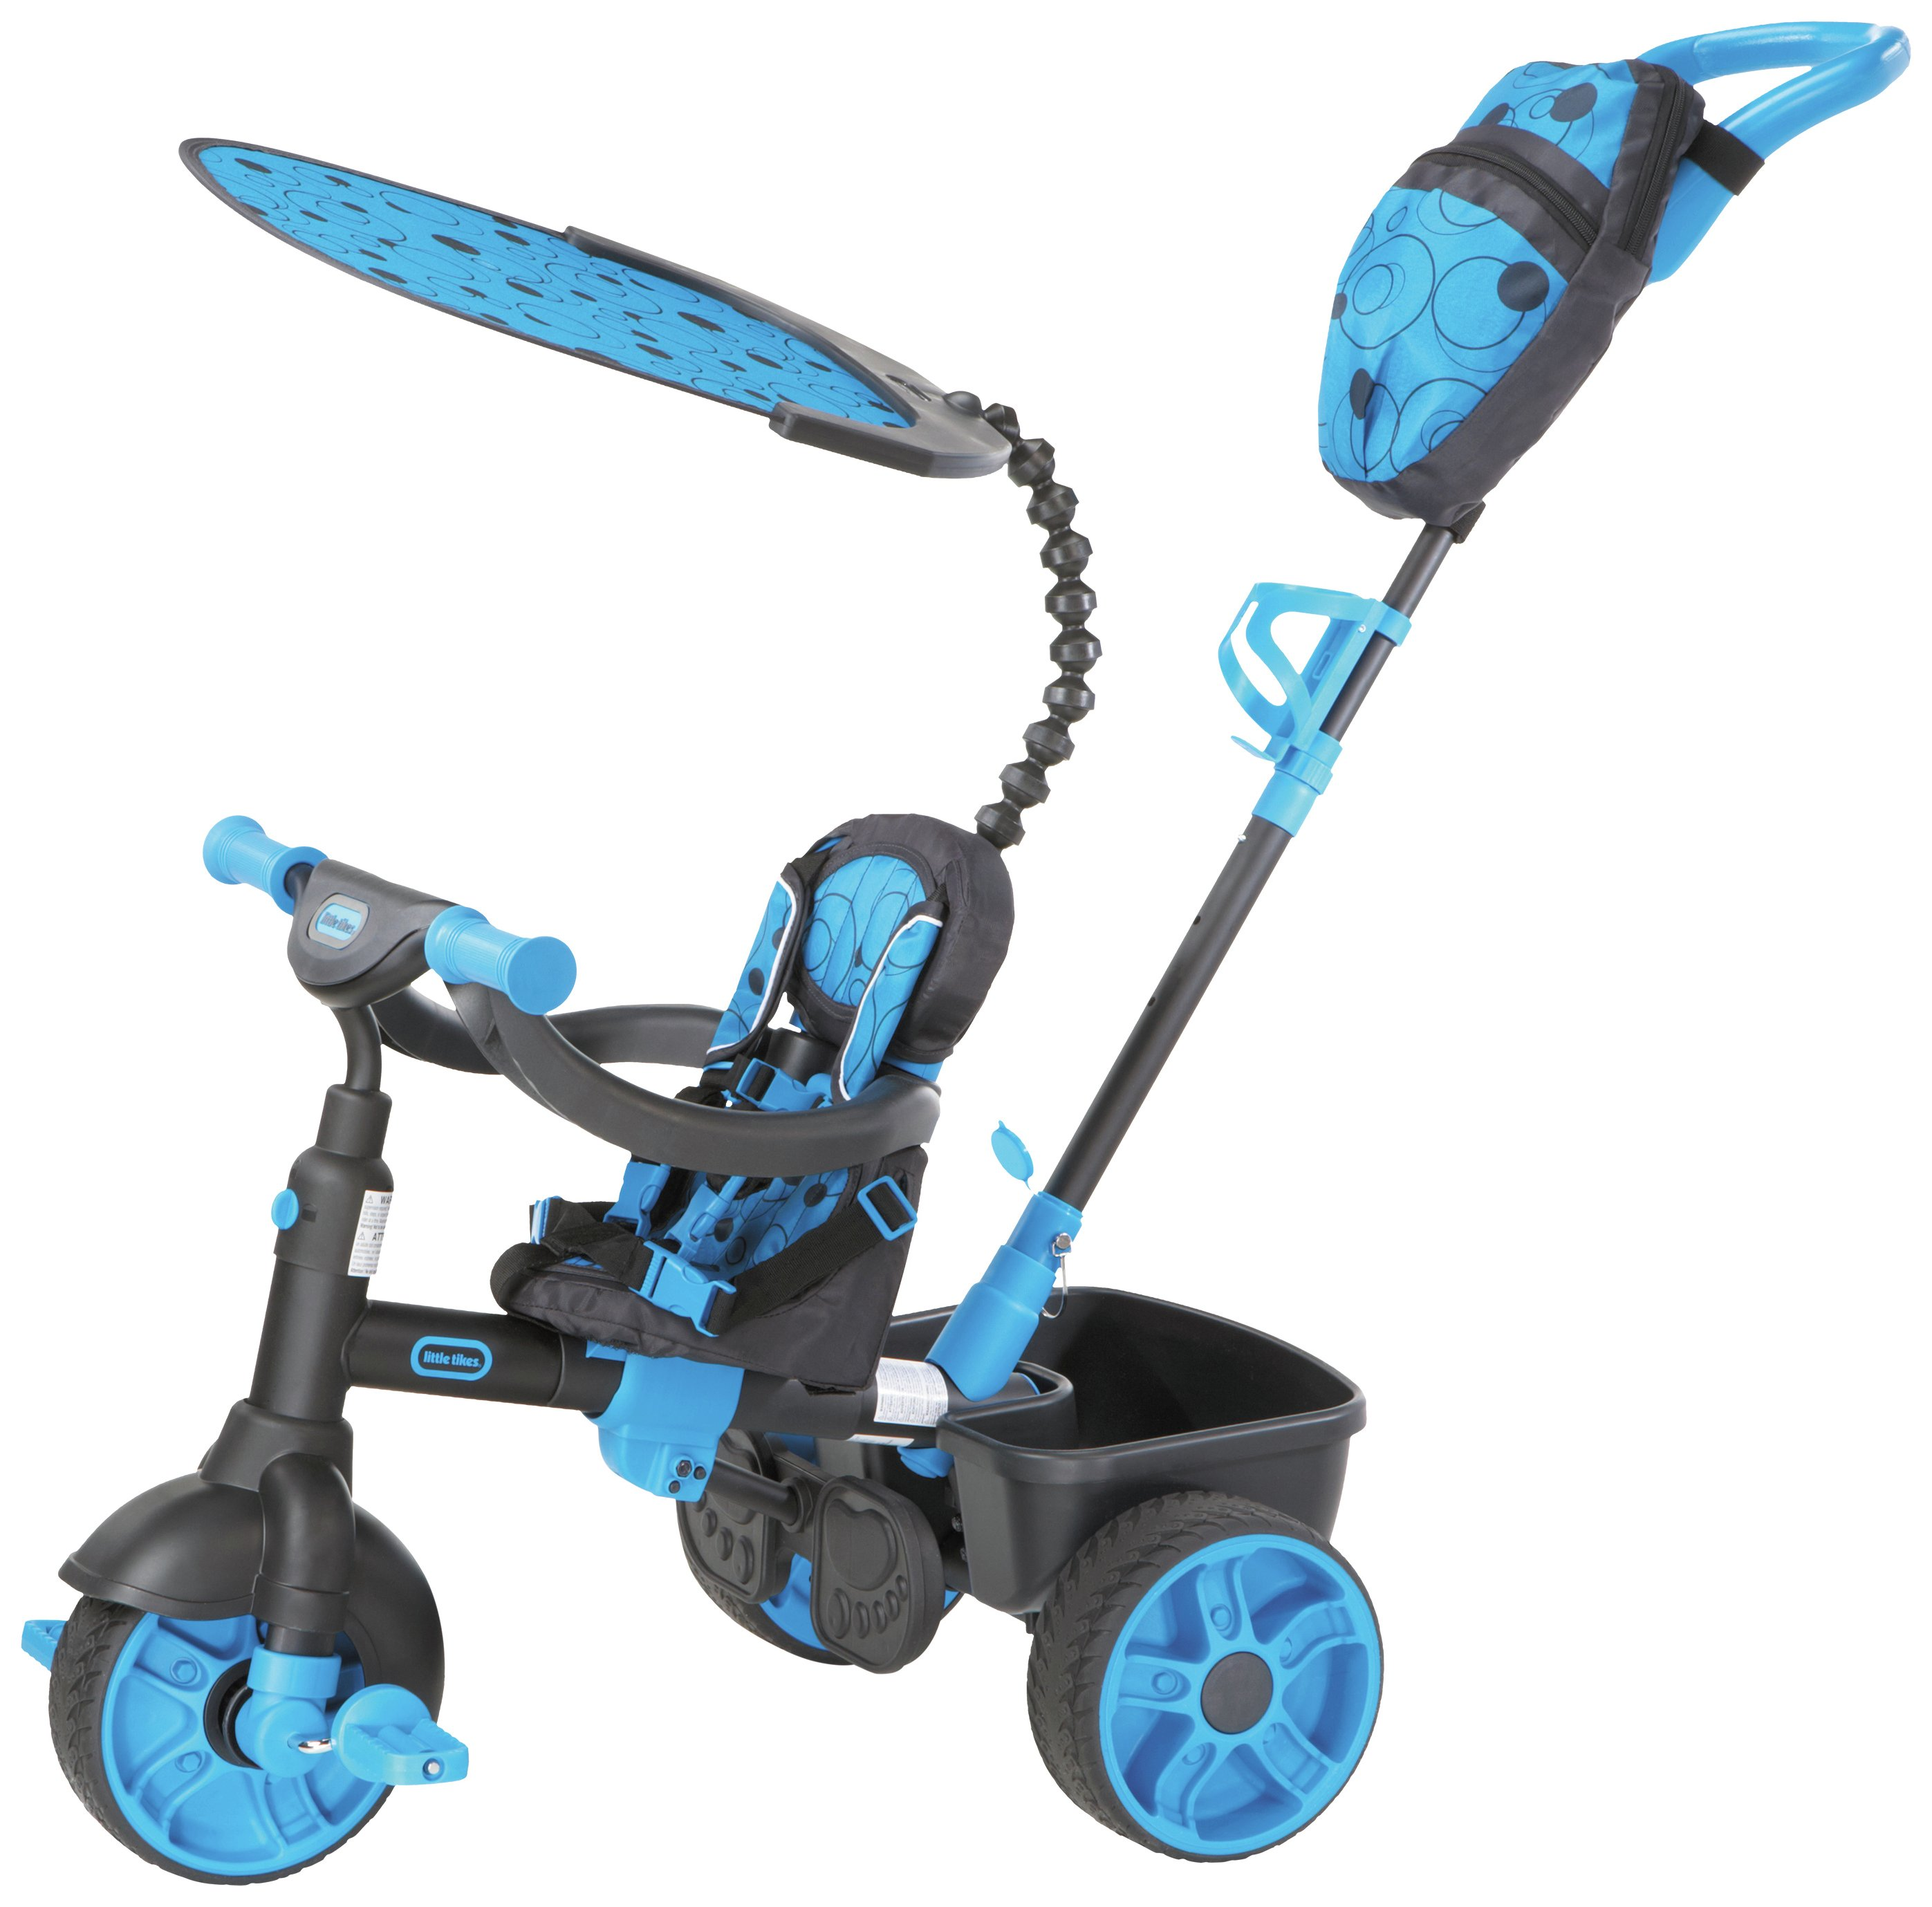 Image of Little Tikes 4-in-1 Deluxe Trike - Neon Blue